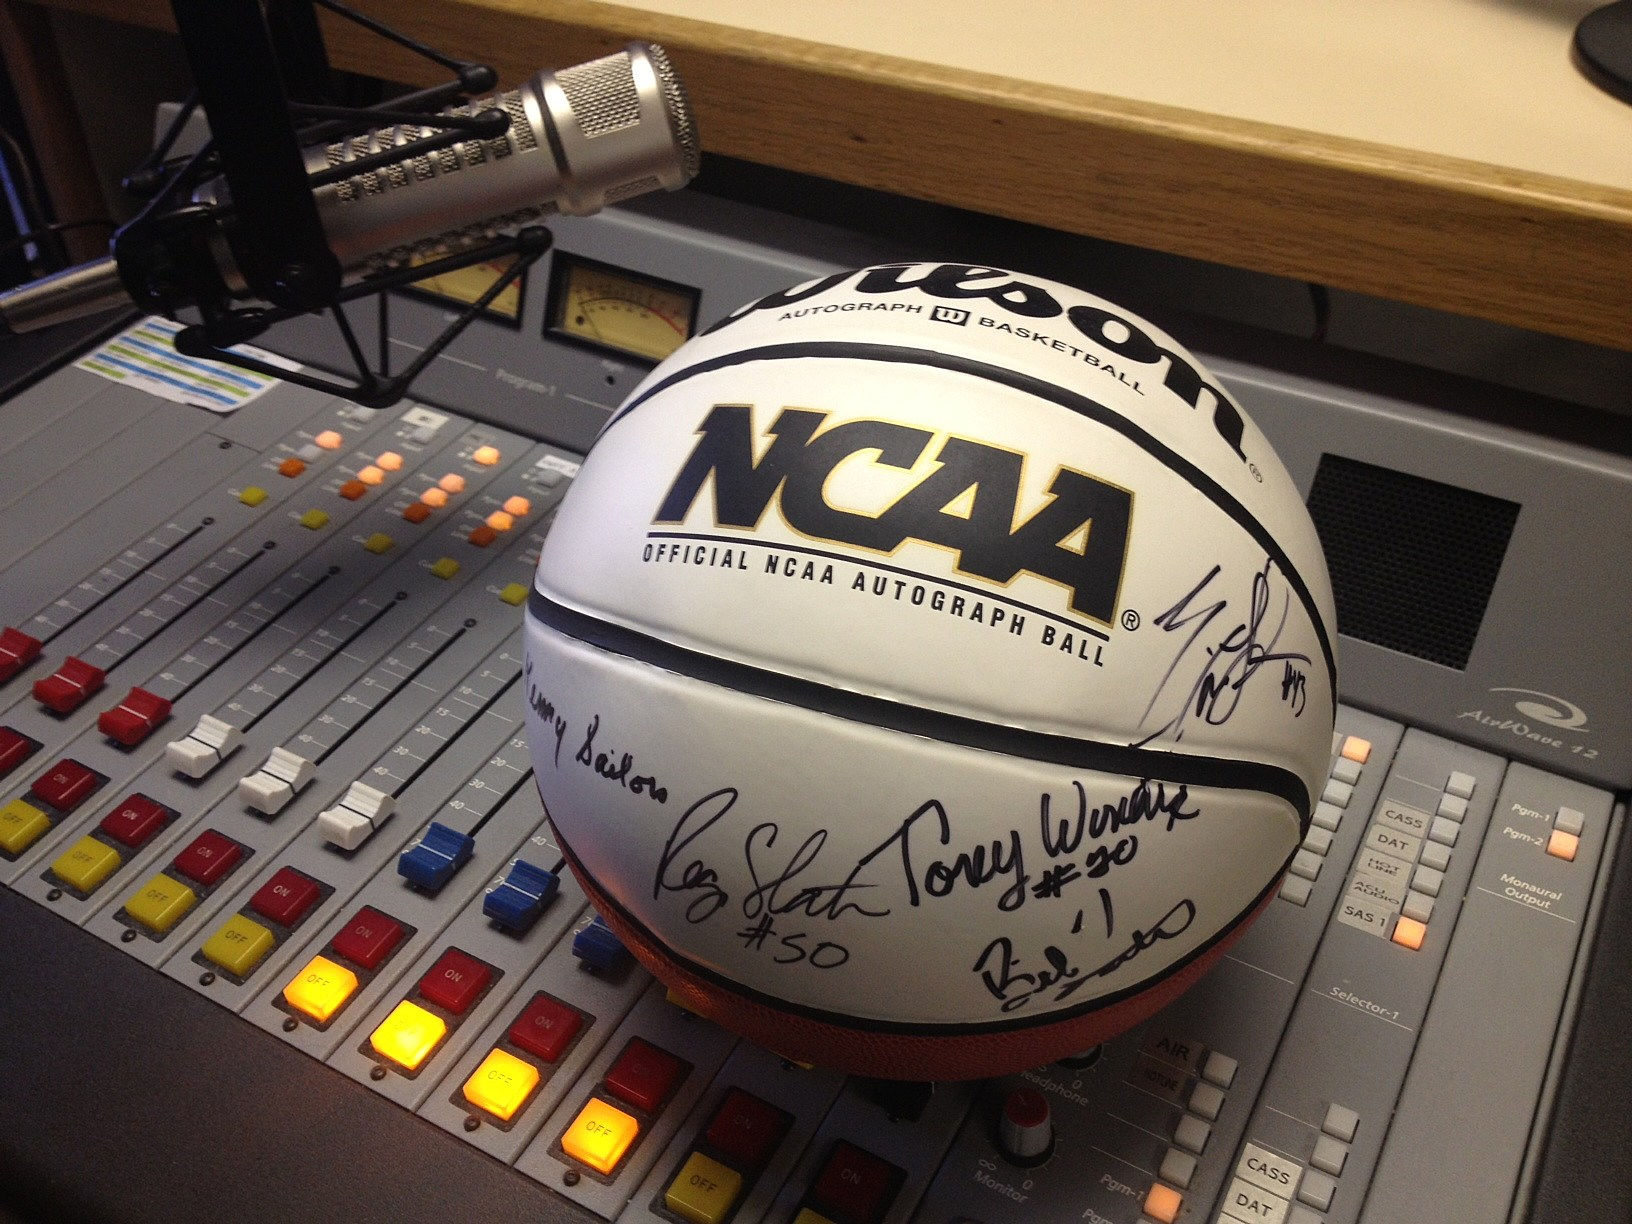 Enter The Am 1400 Espn Ncaa Bracket Challenge For Your